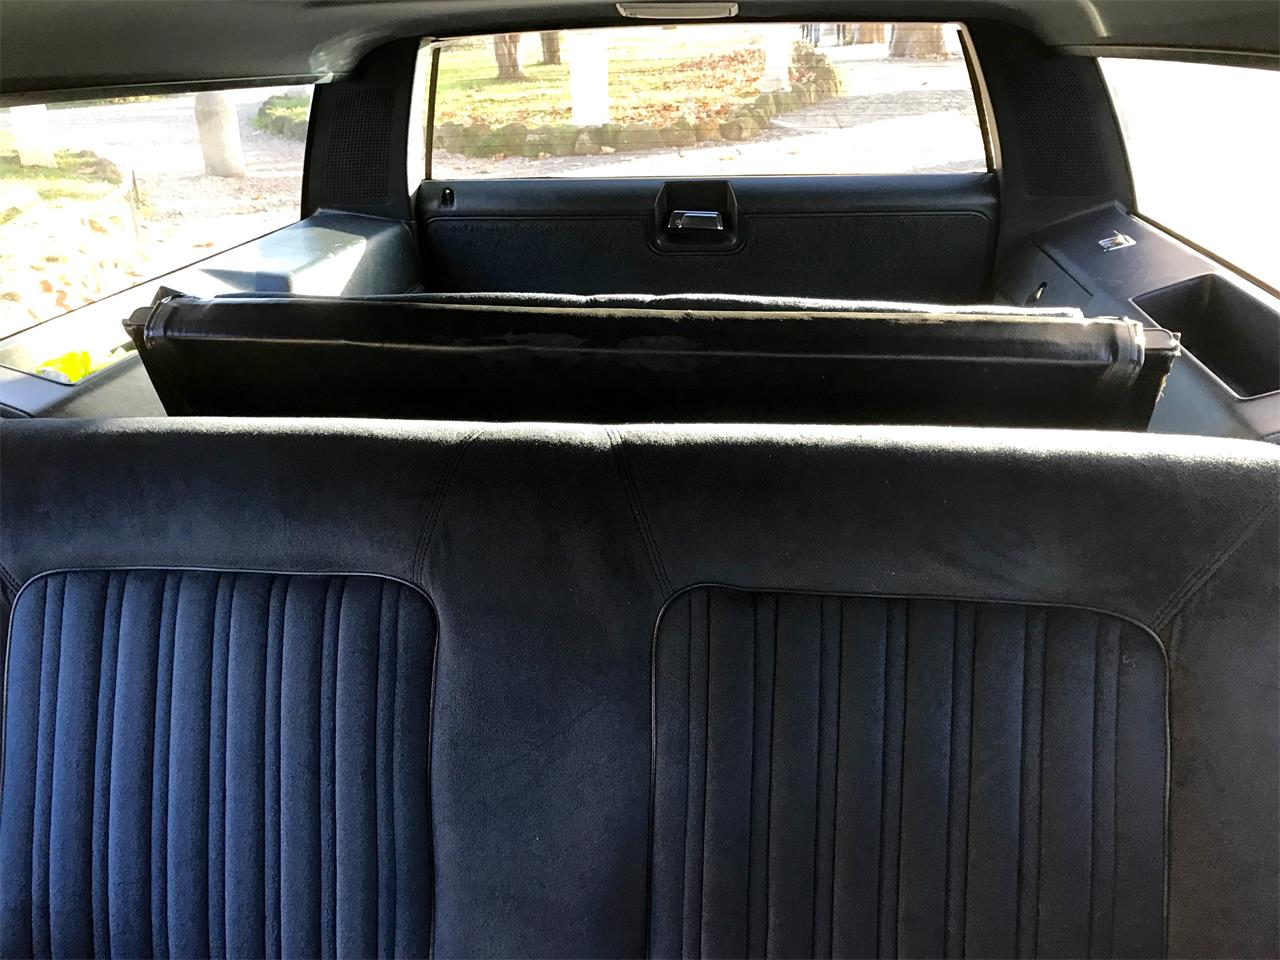 Large Picture of '87 Chevrolet Caprice located in Rome Italy - $16,900.00 Offered by a Private Seller - JH35